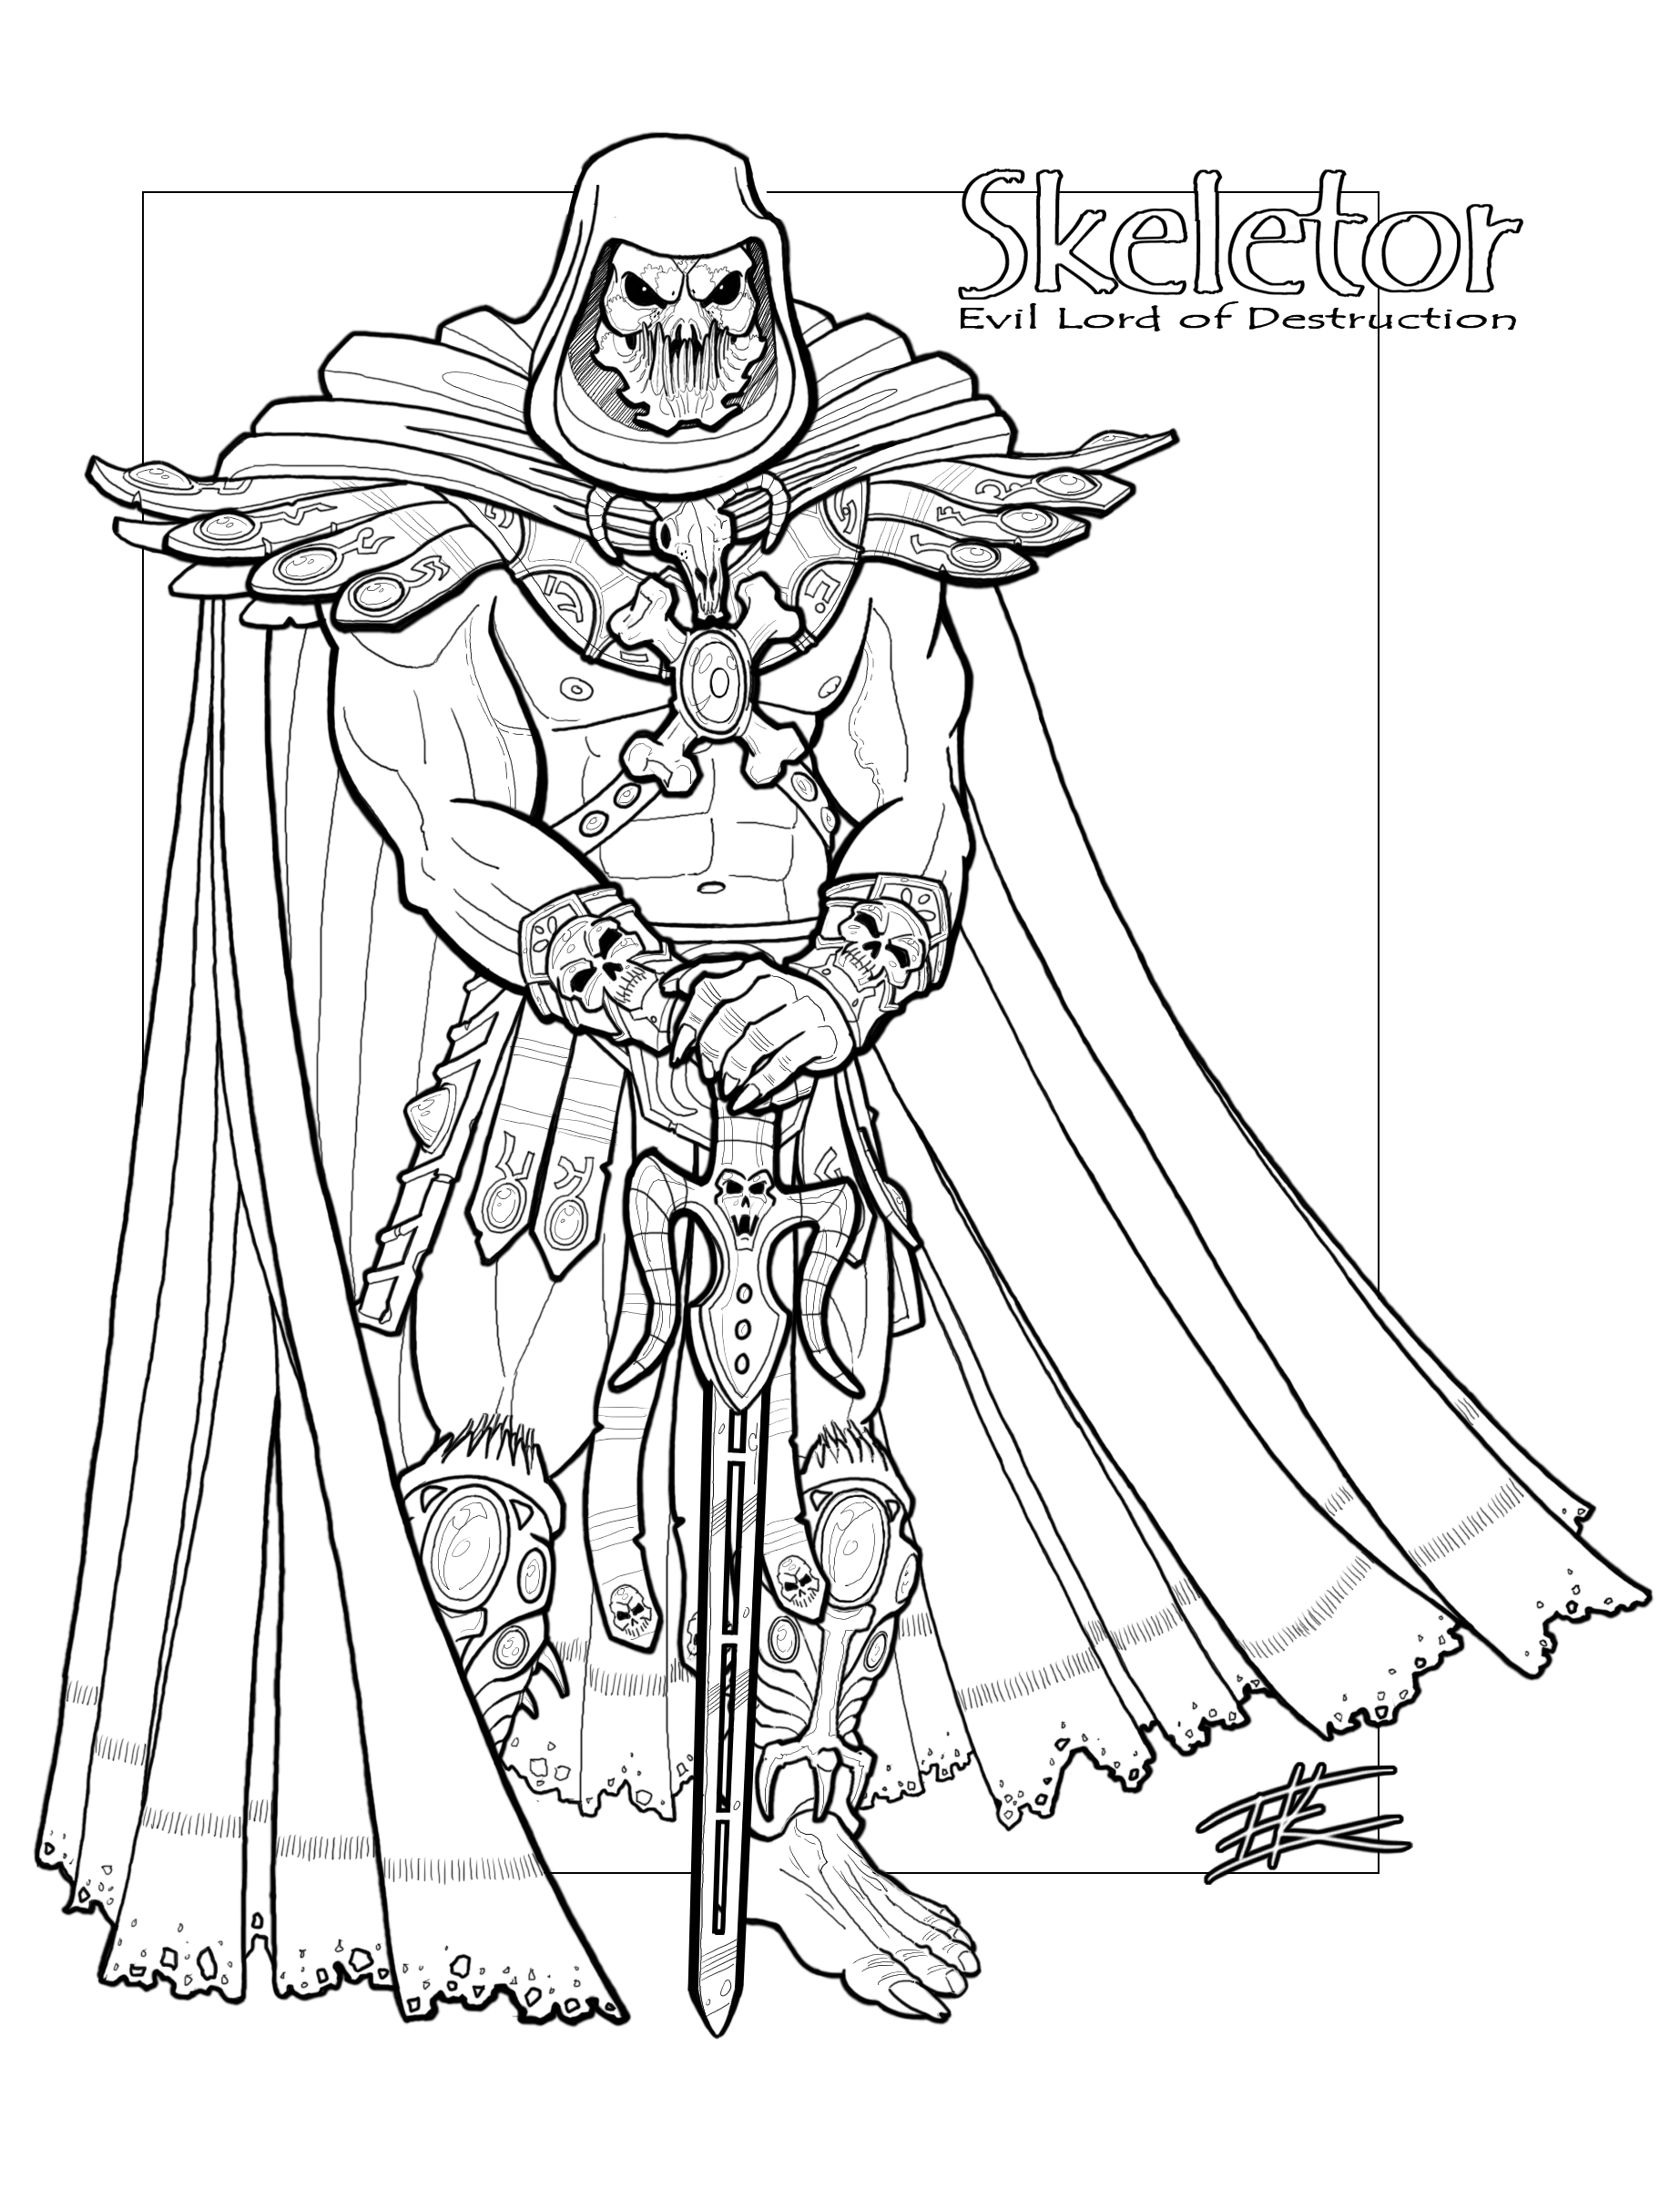 Skeletor_LineArt.png (1845×2415) Adult coloring pages